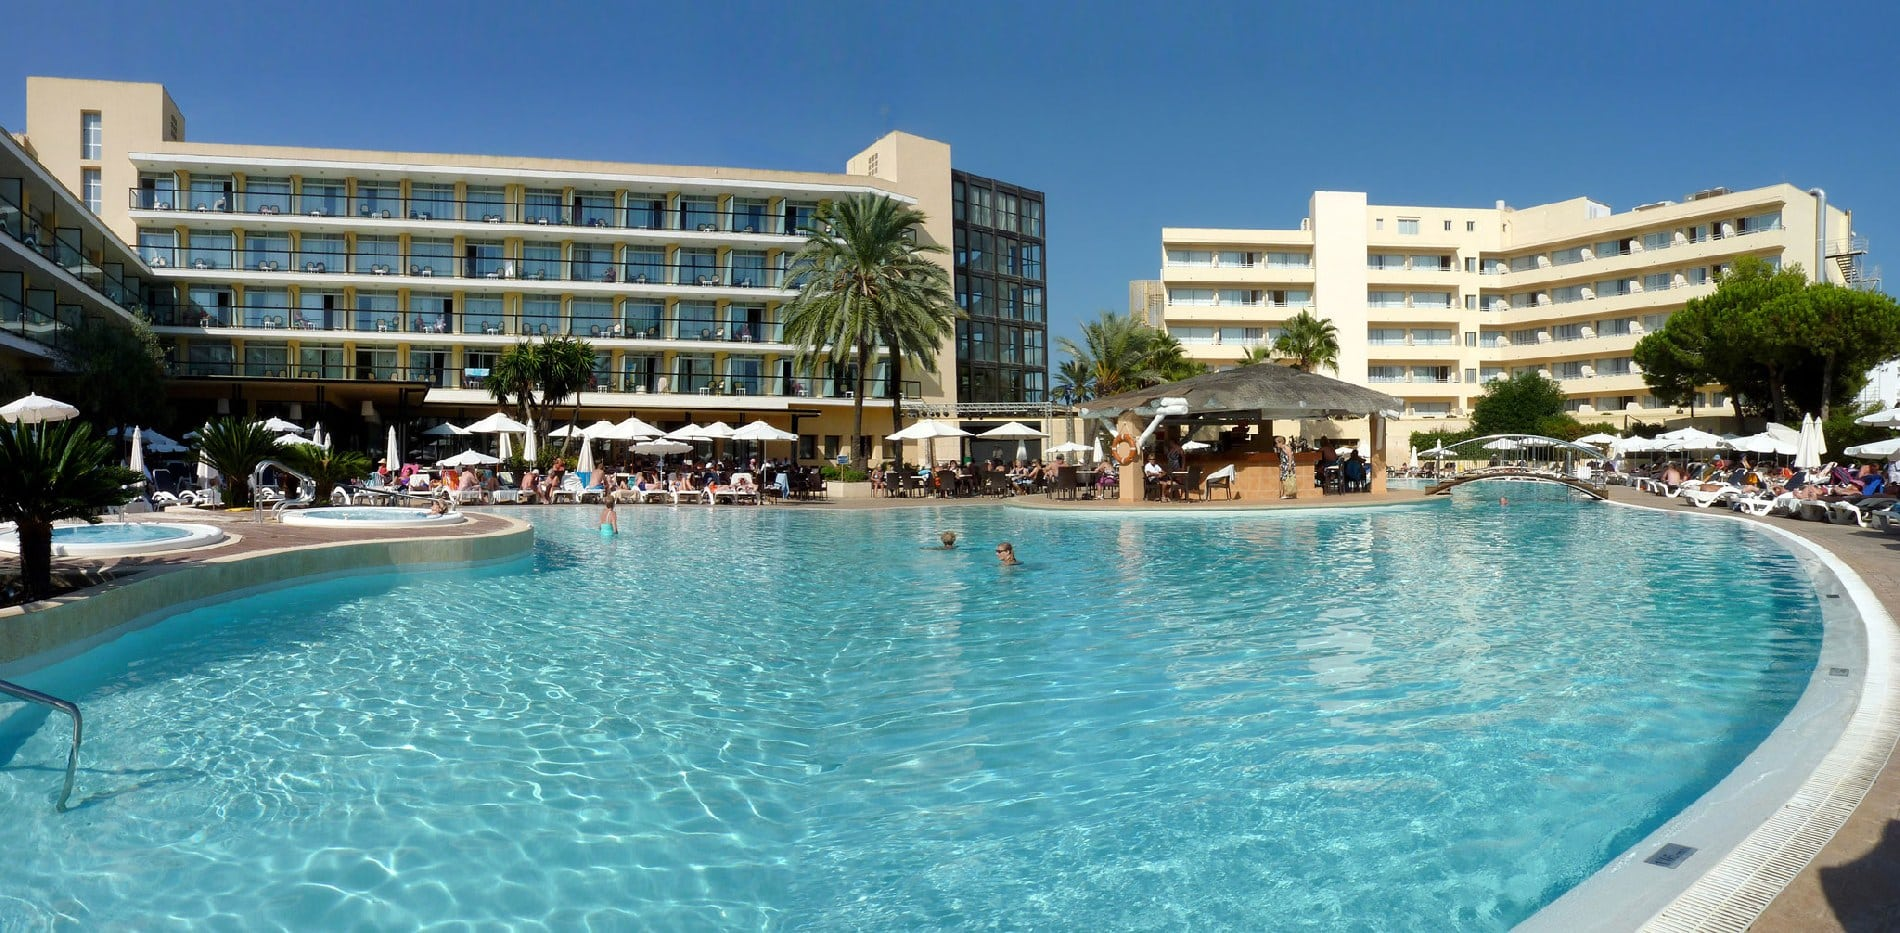 HOTELS & APARTMENTS from £8pppn